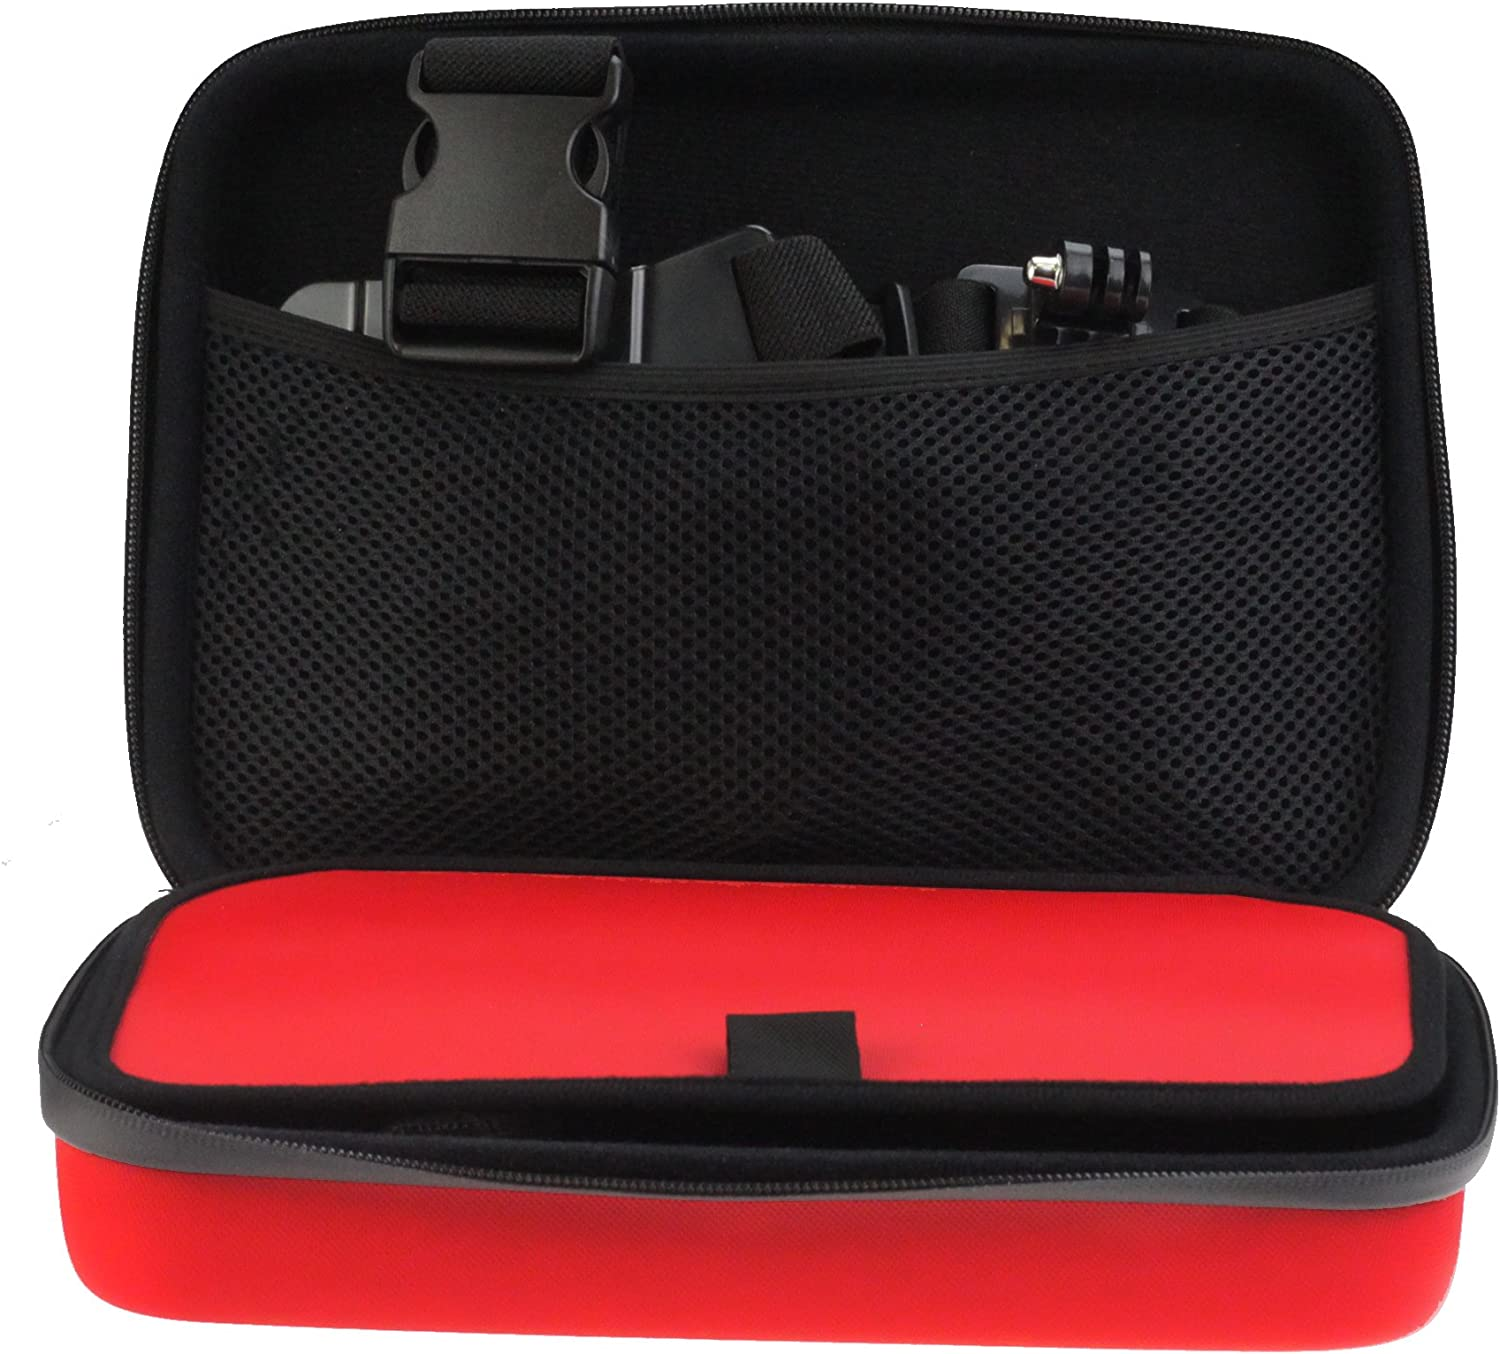 Navitech Red Hard Rugged Protective Portable Handheld Binocular Case Compatible with The Nikon Monarch 10x30